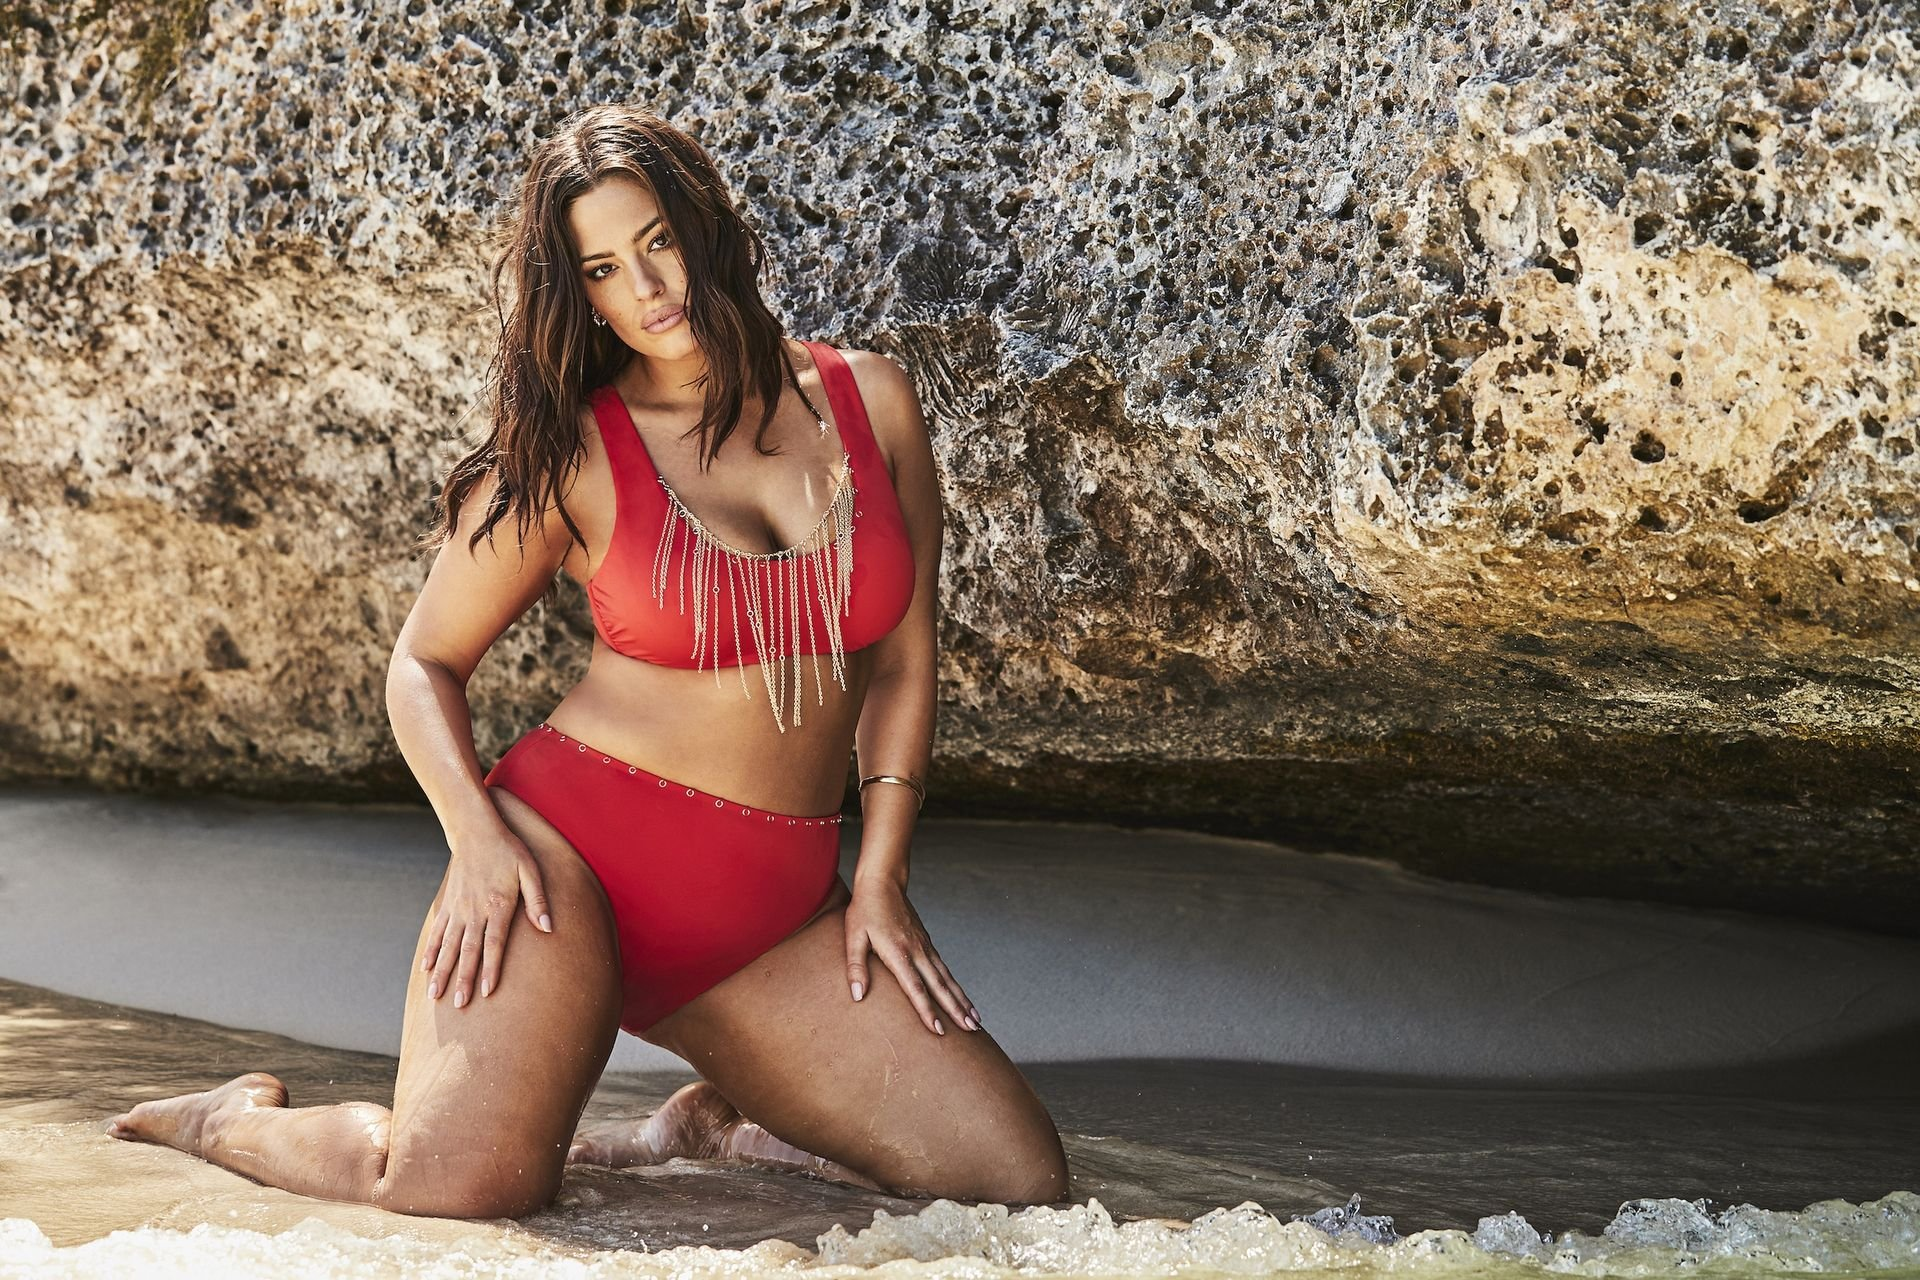 Ashley Graham proudly shows off her voluptuous figure in the new Swimsuits For All summer collection (2019)